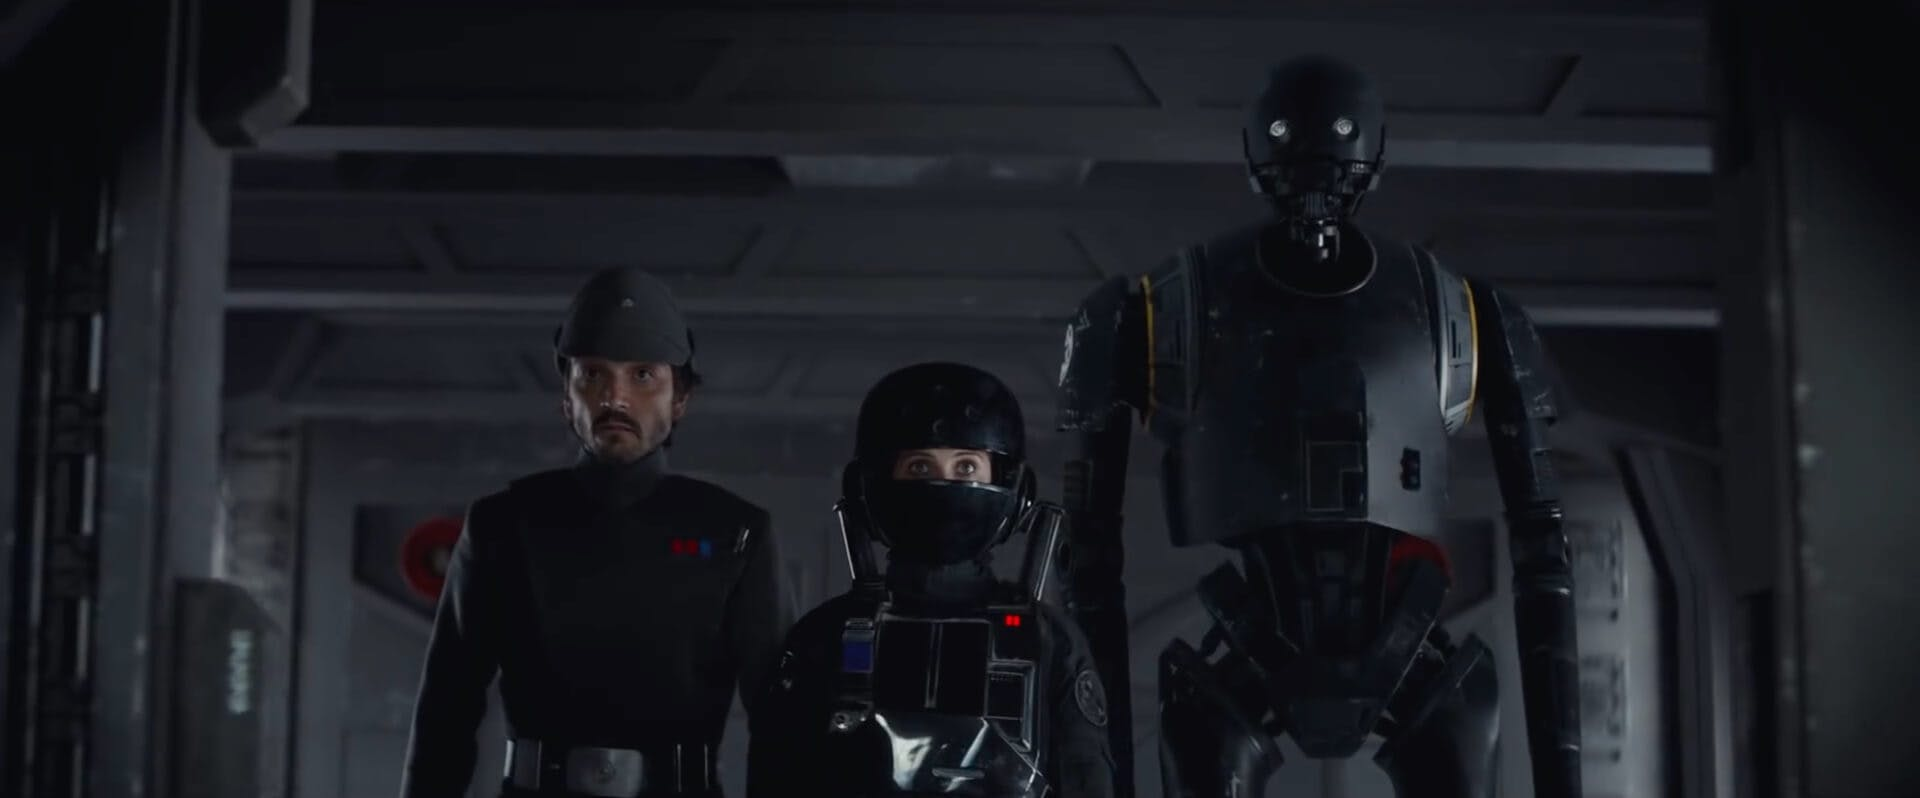 Rogue One star wars movies